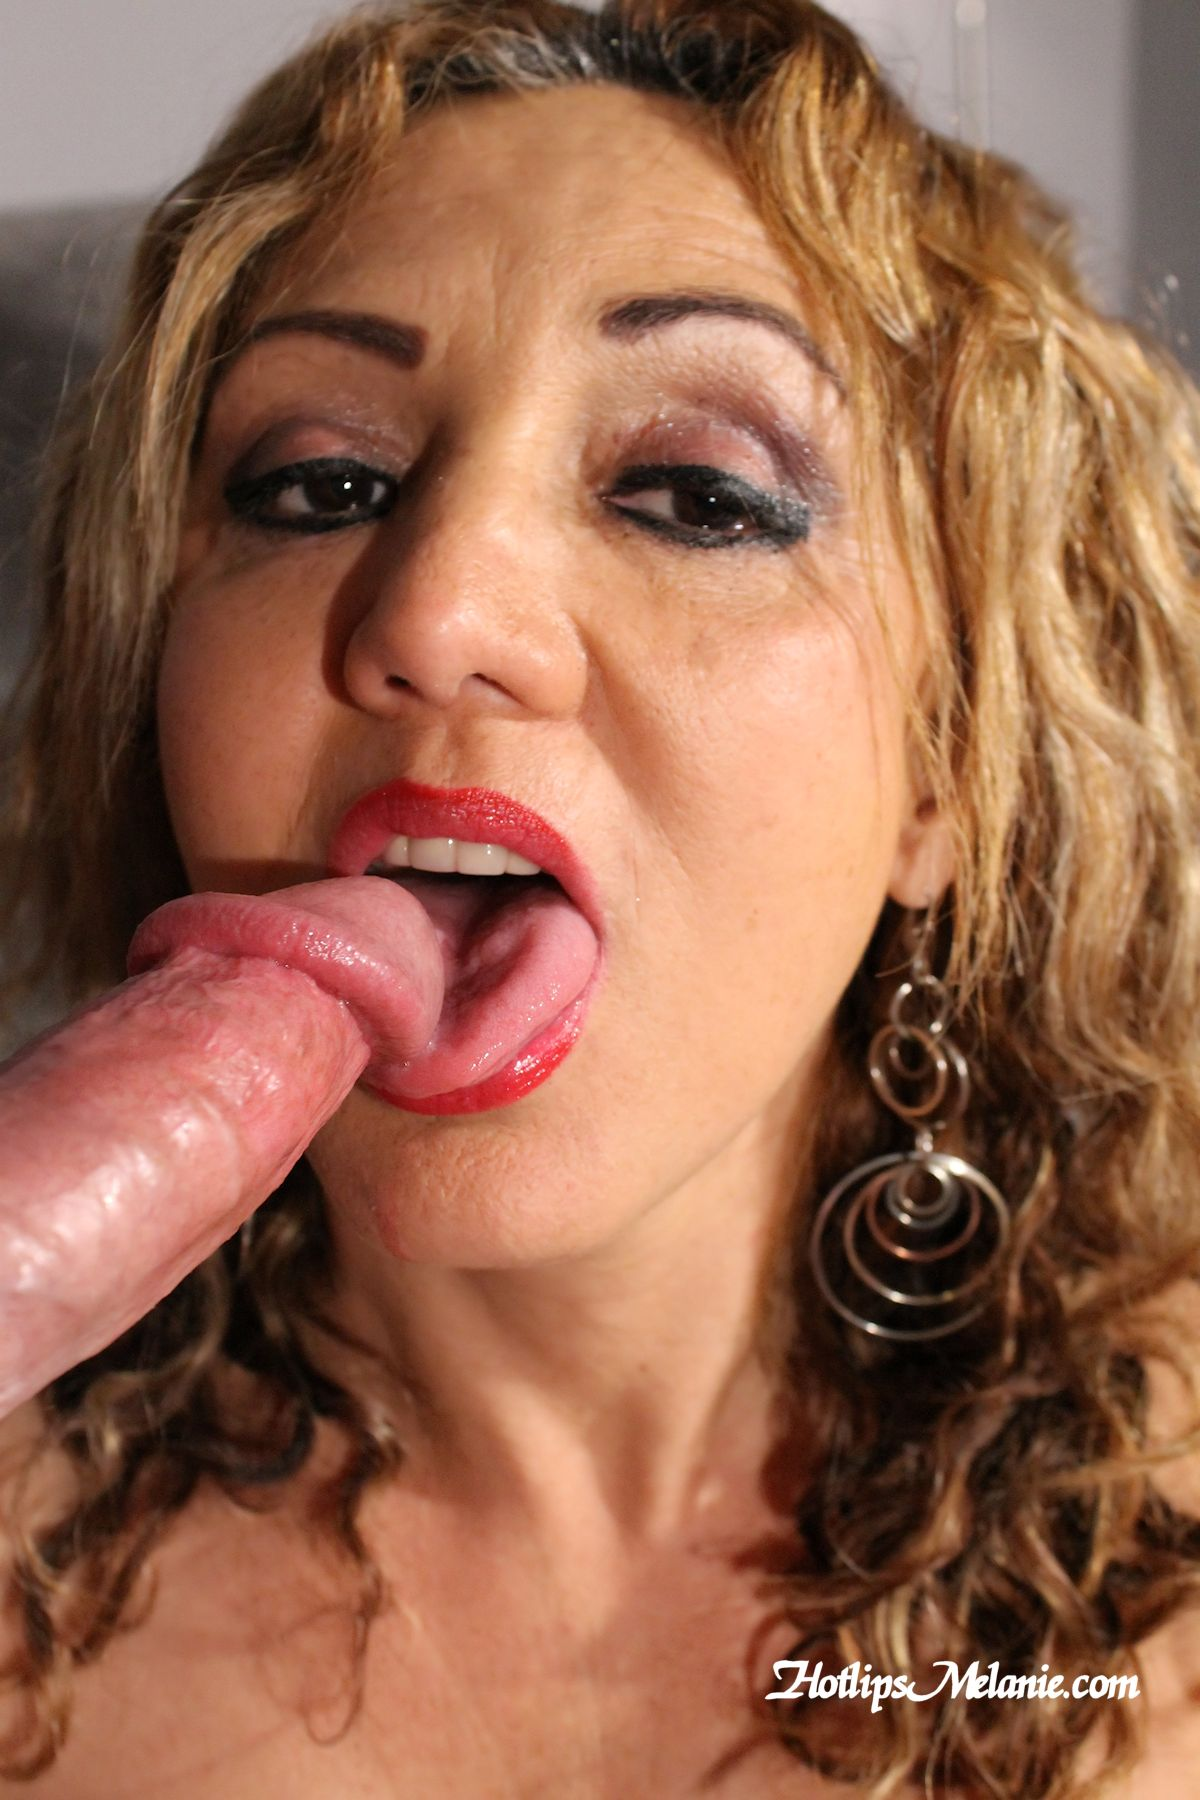 Huge Dick Mature Milf 39